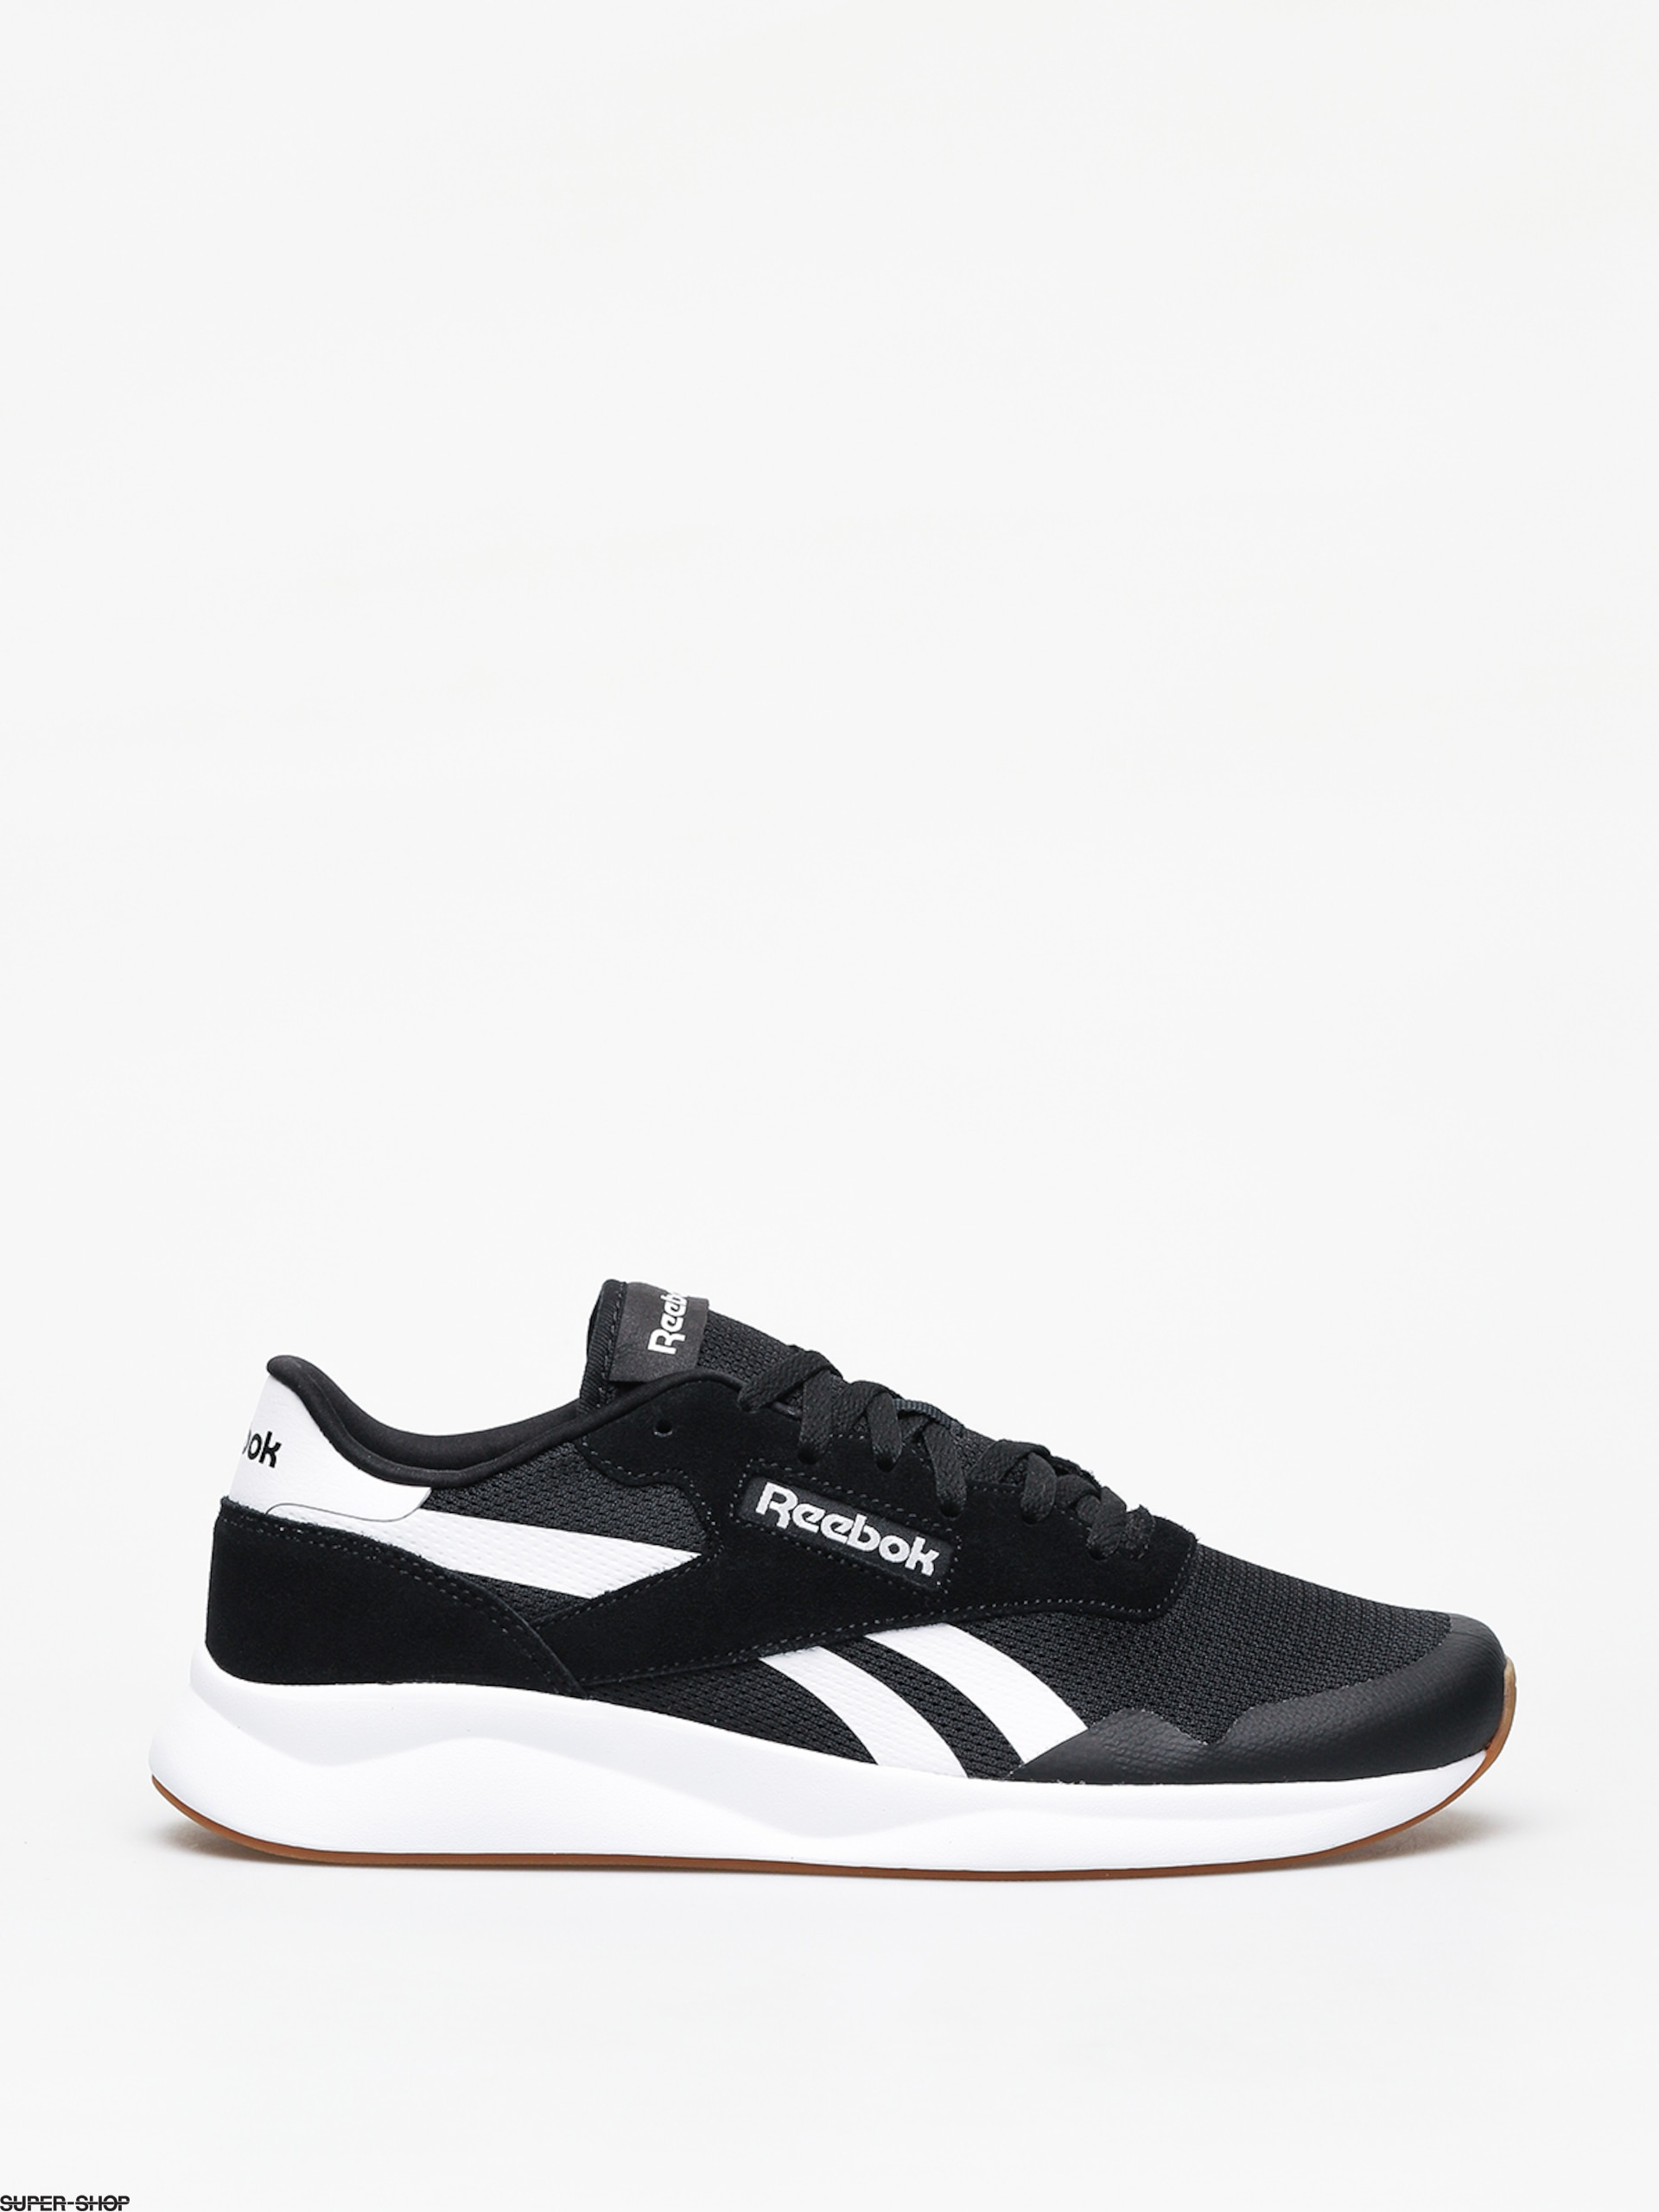 1012720-w1920-reebok-royal-ultra-edge-shoes-black-white-gum.jpg 6bbc0676e